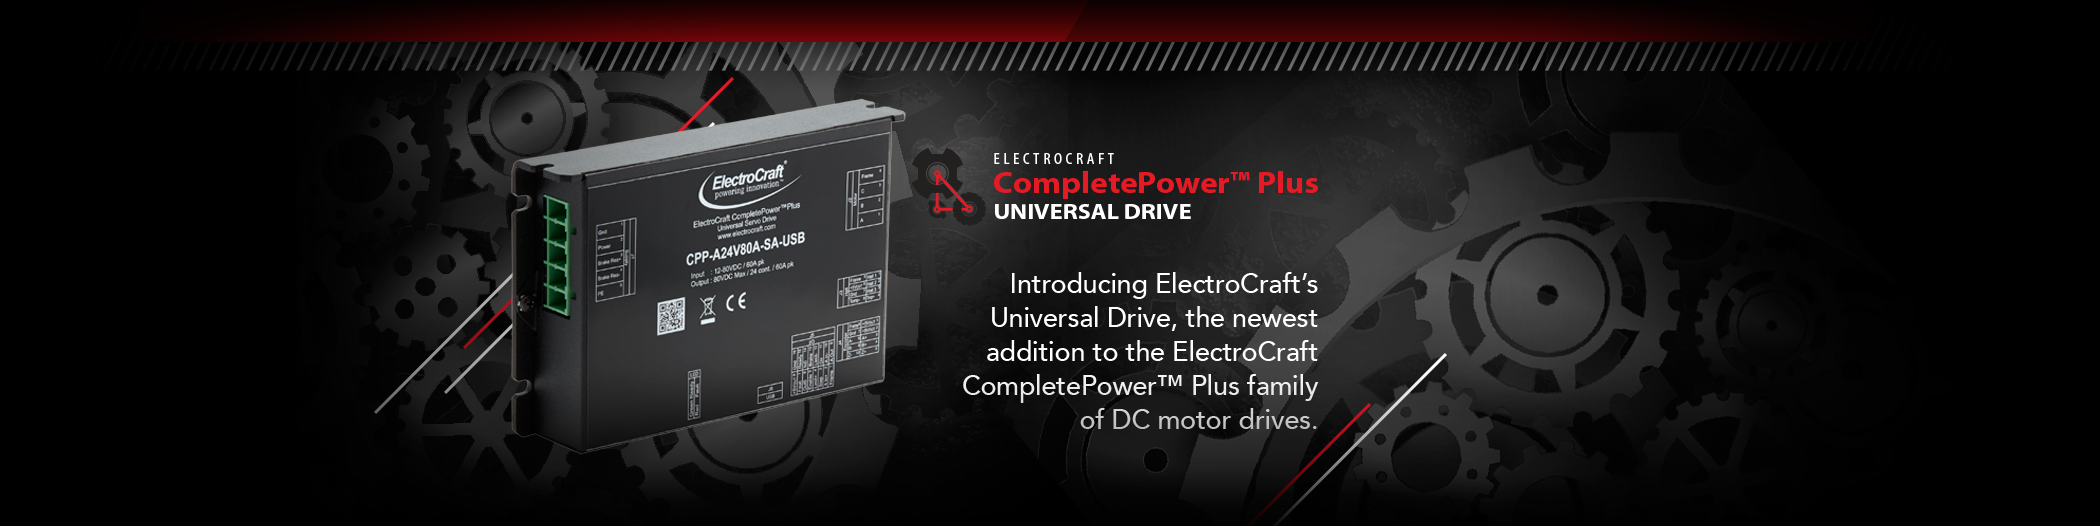 Introducing ElectroCraft's Universal Drive, the newest addition to the ElectroCraft CompletePowerTM Plus family of DC motor drives.